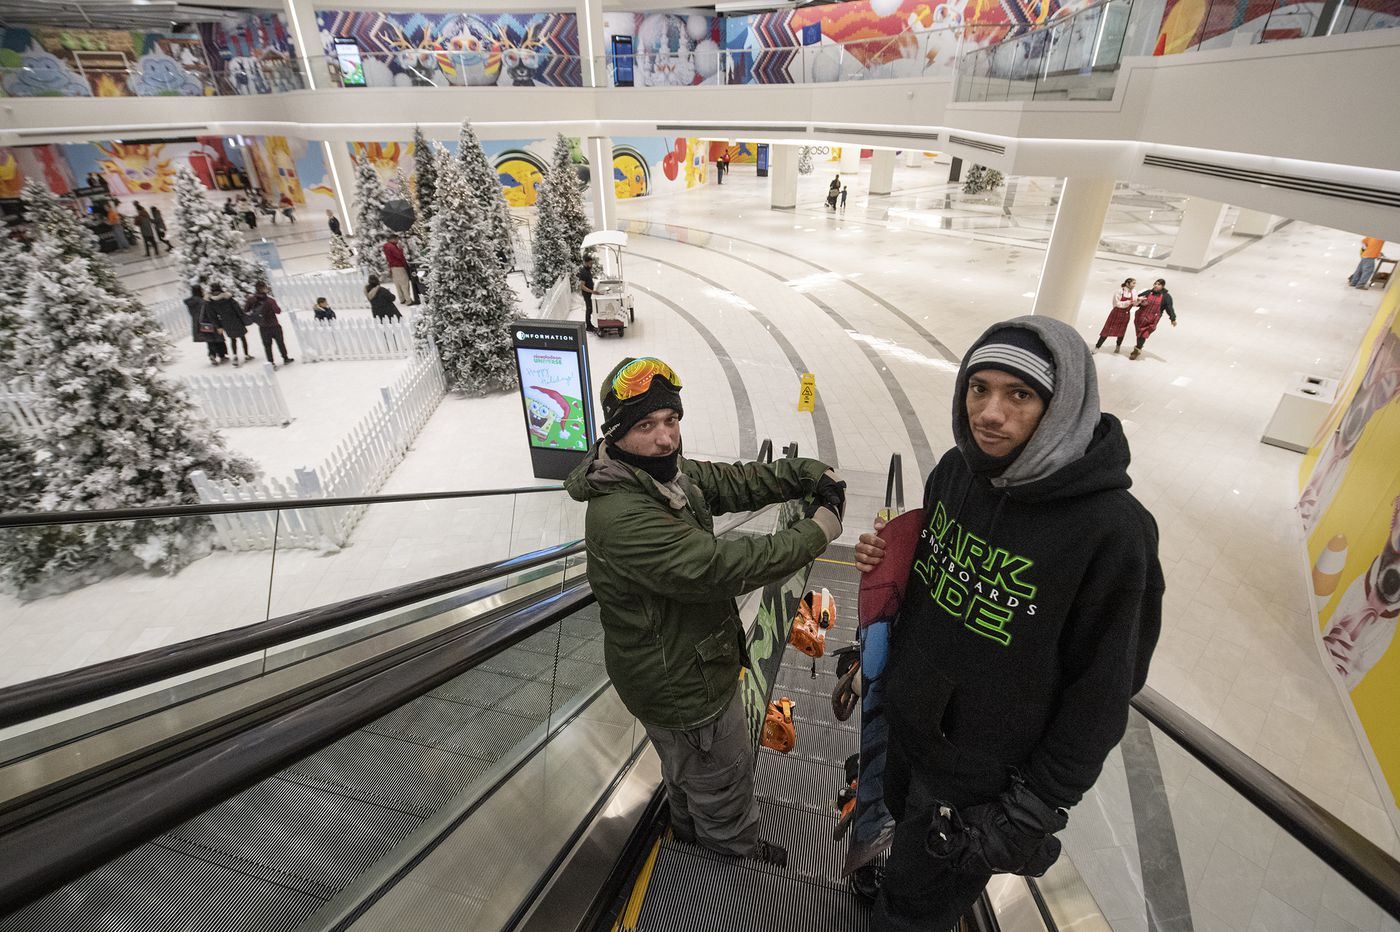 Can an indoor ski slope draw people to a New Jersey mega-mall?